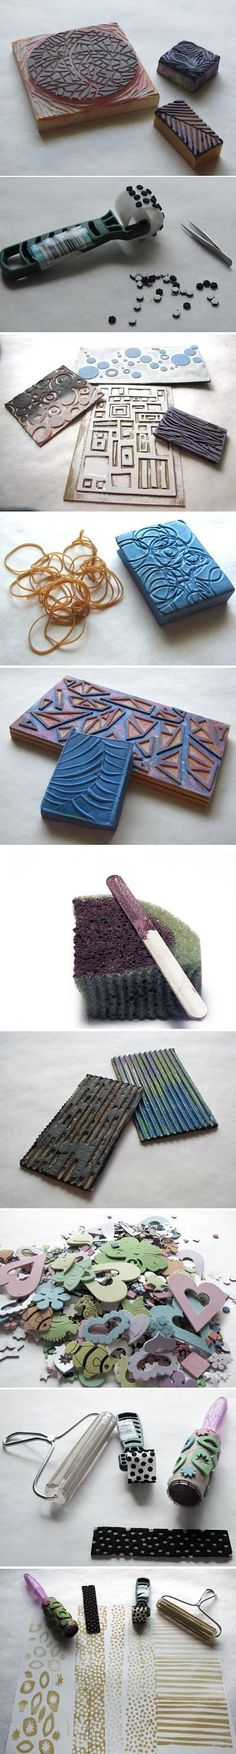 many DIY stamp ideas & instructions -- from Judi Hurwitt at Approachable Art, here: approachable-art....